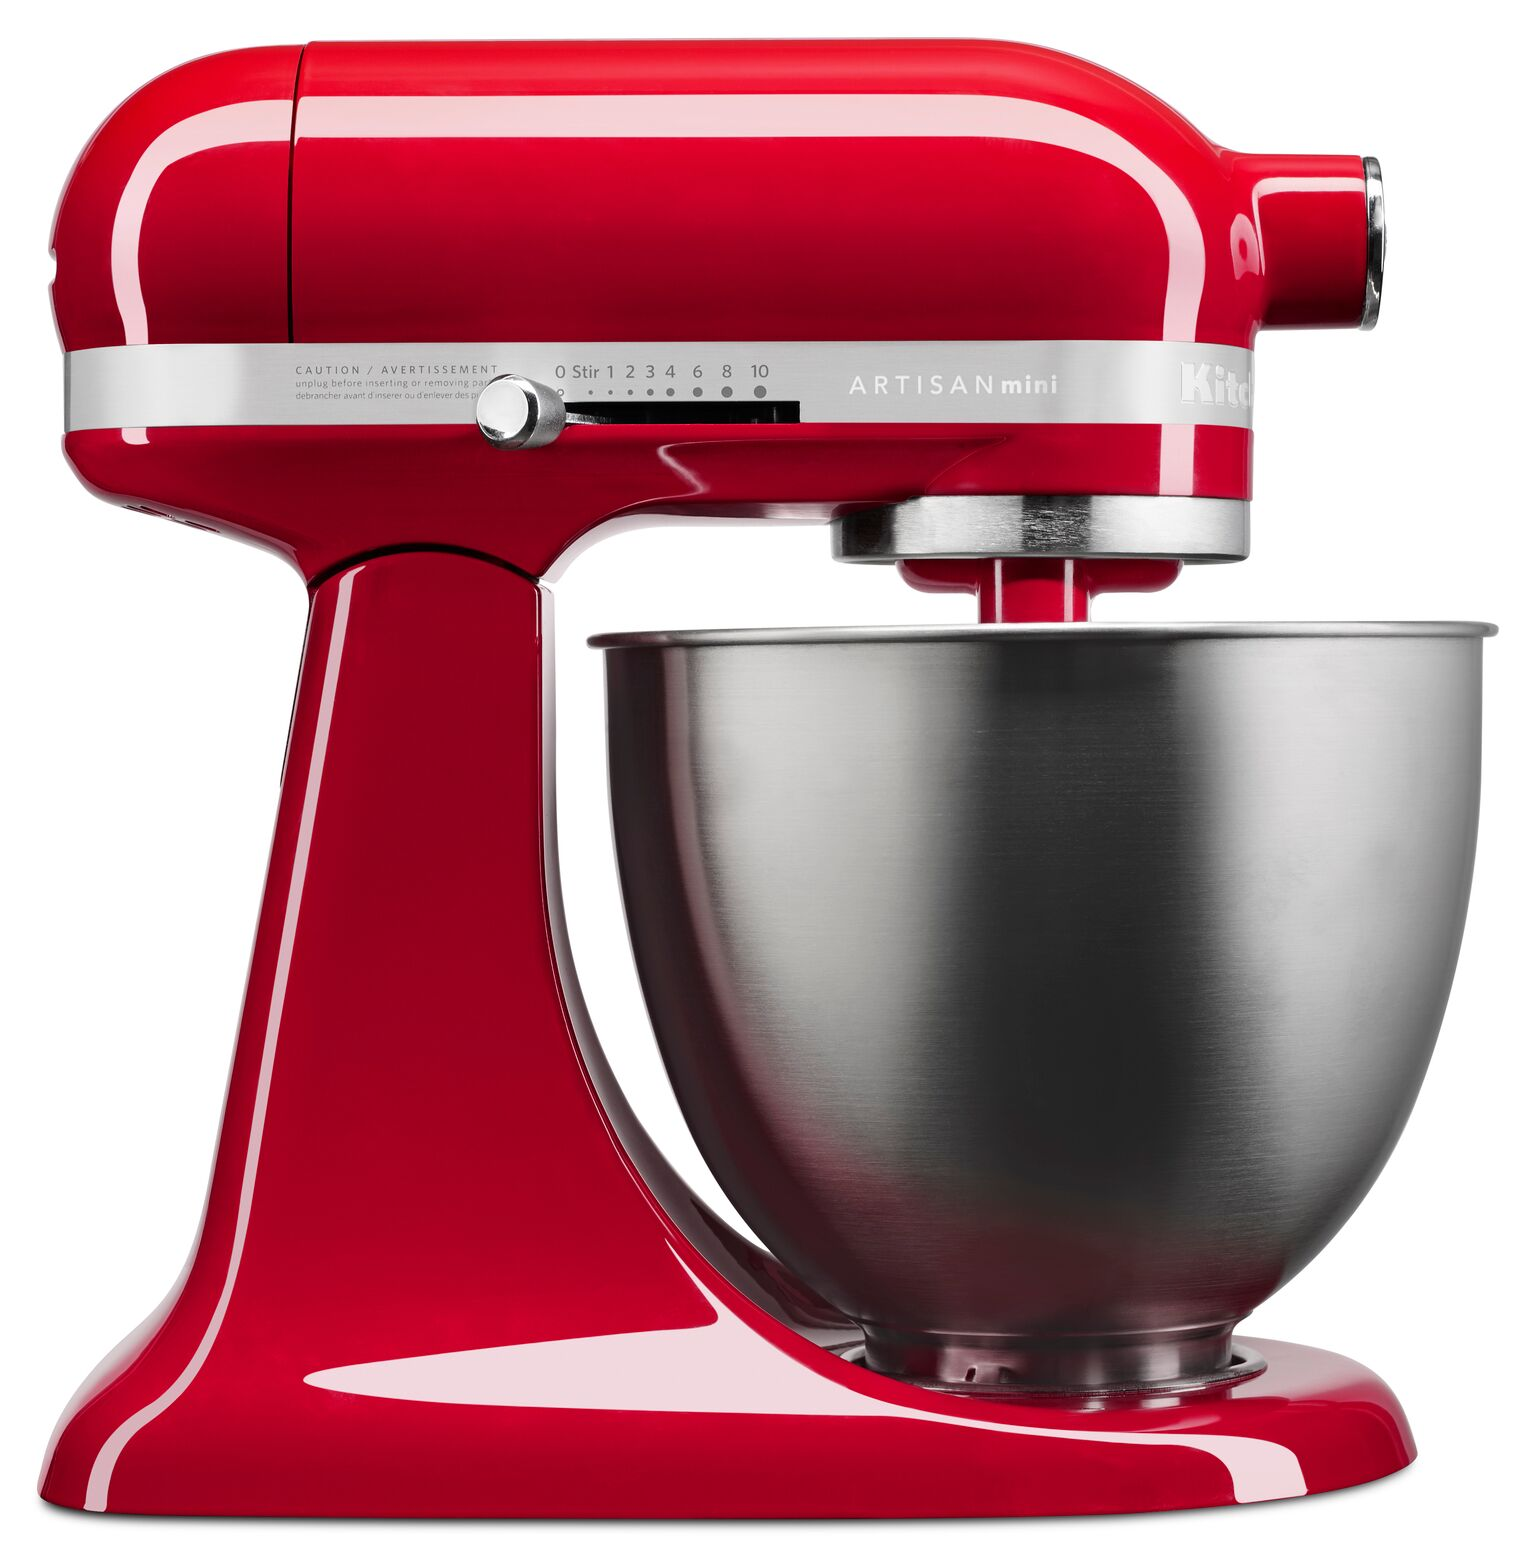 KitchenAid Artisan Mini 3.5 Quart Tilt-Head Stand Mixer, Contour Silver (KSM3311XCU)